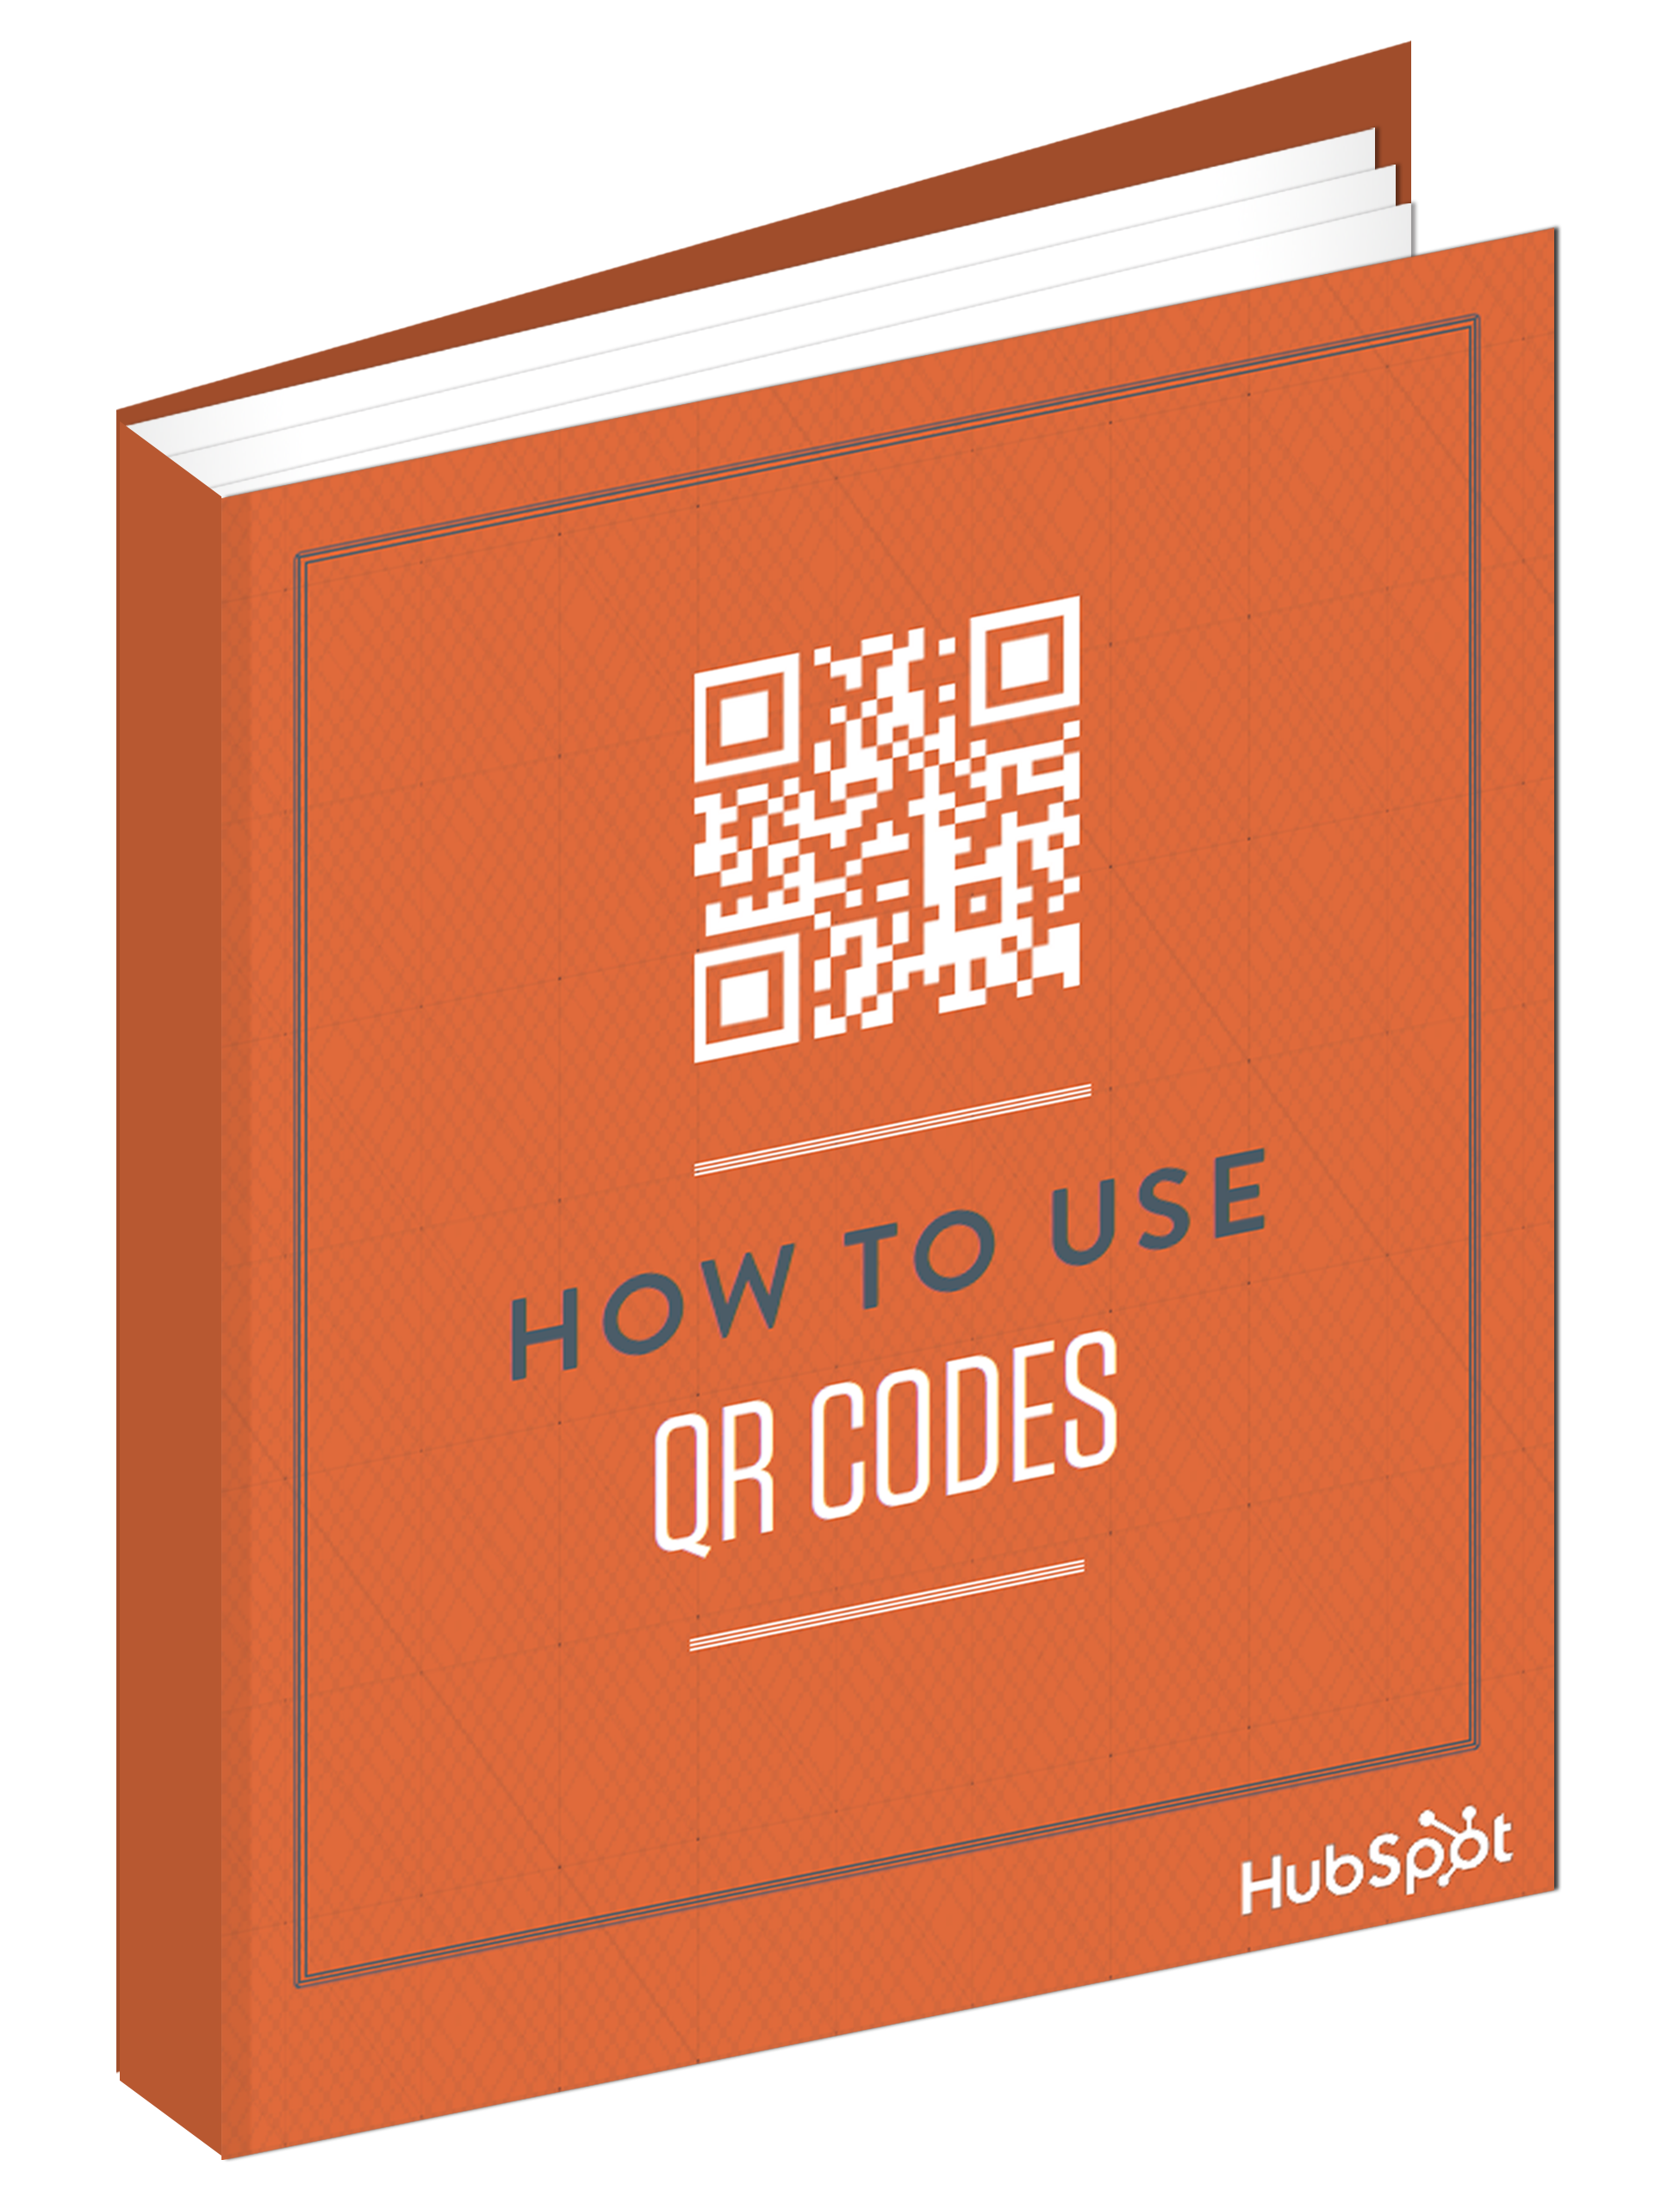 how-to-use-qr-codes